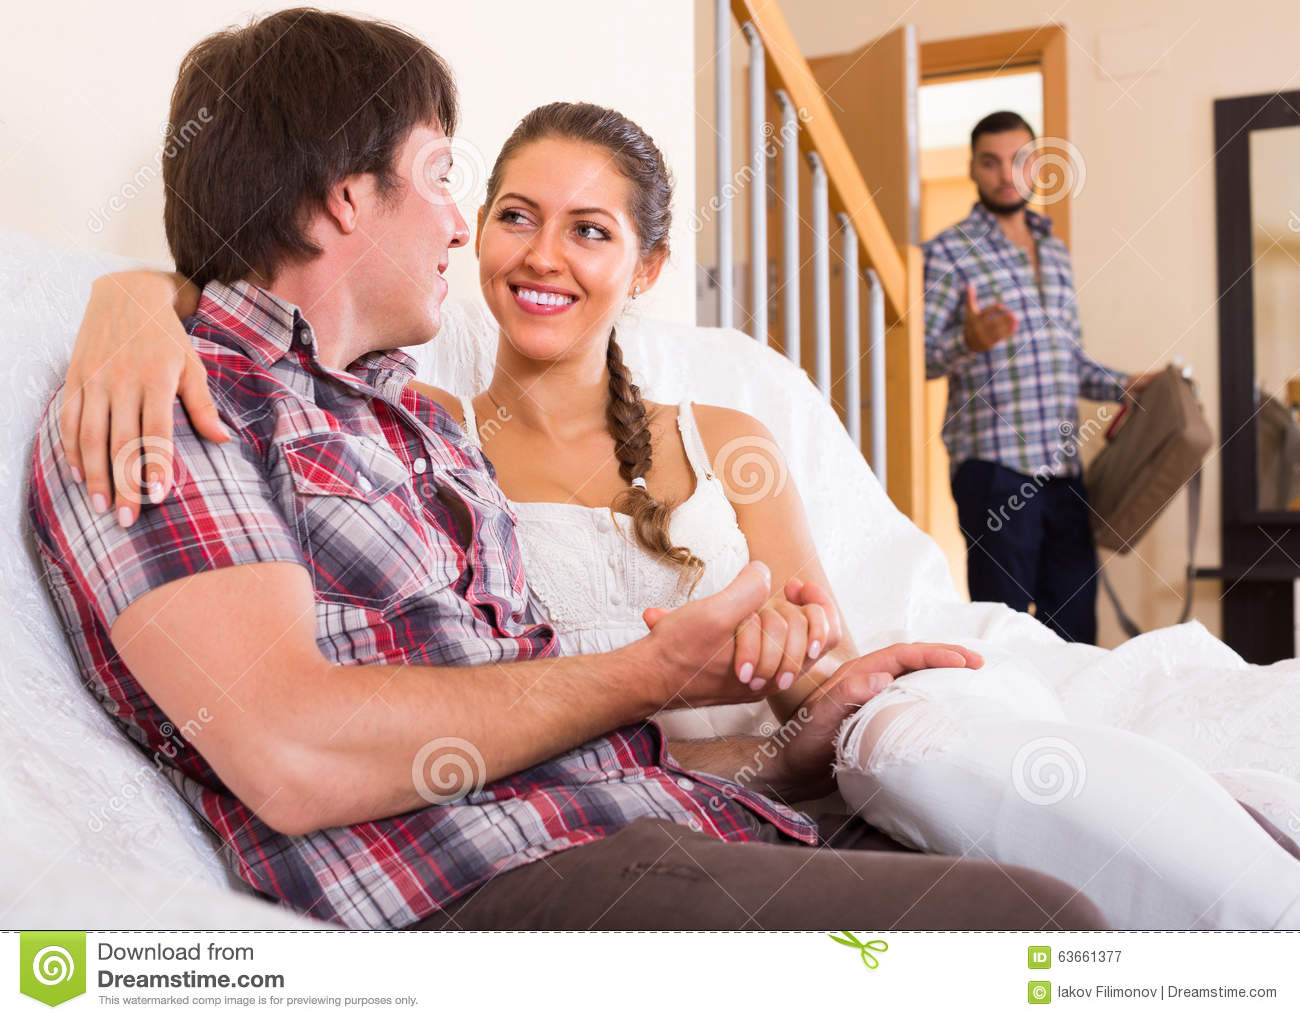 Download Adult And Cheating Partner At Home Stock Image Image Of Domestic Male